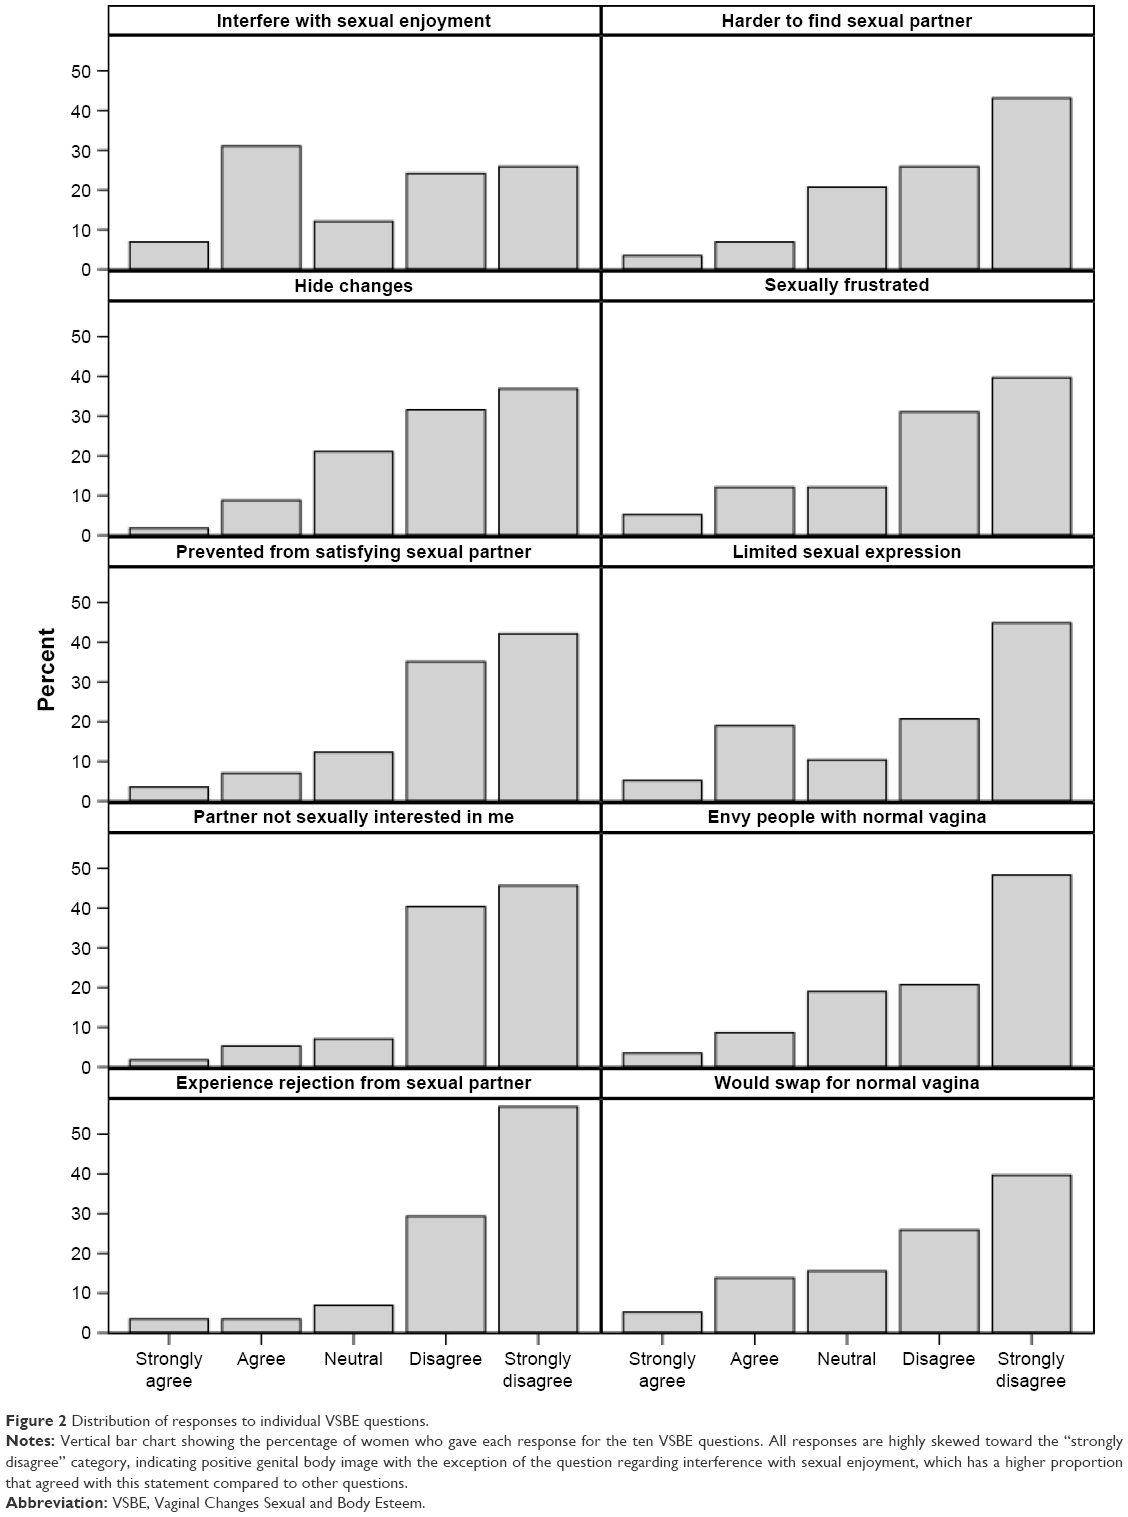 hight resolution of figure 2 distribution of responses to individual vsbe questions notes vertical bar chart showing the percentage of women who gave each response for the